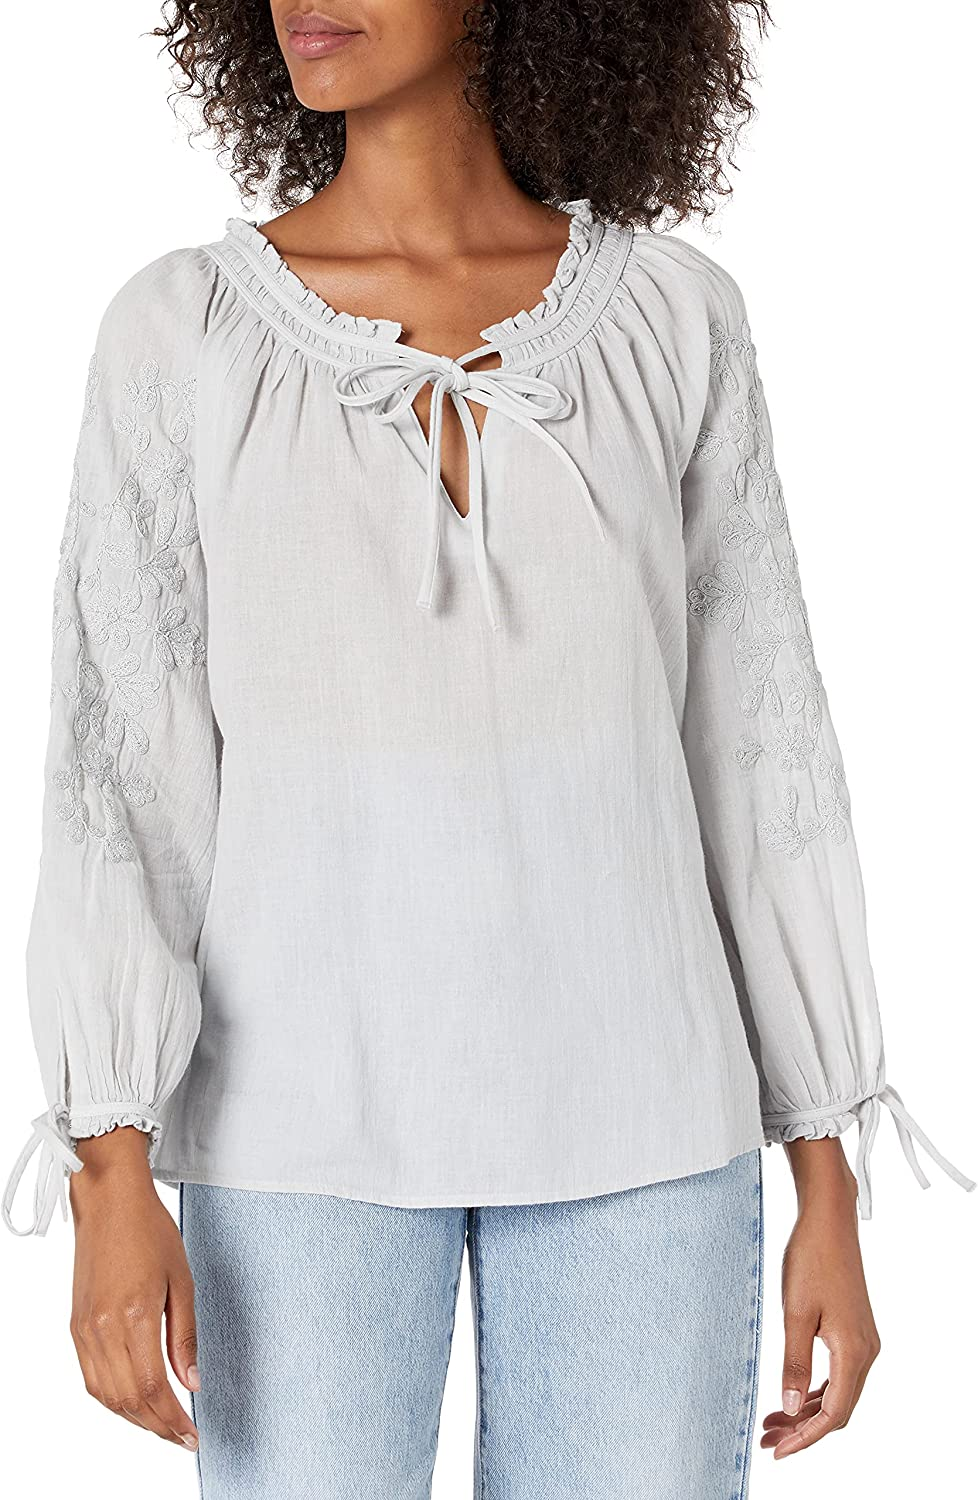 Lucky Brand Women's Metallic Embroidery Top Tie Latest item Sleeve Peasant Max 46% OFF